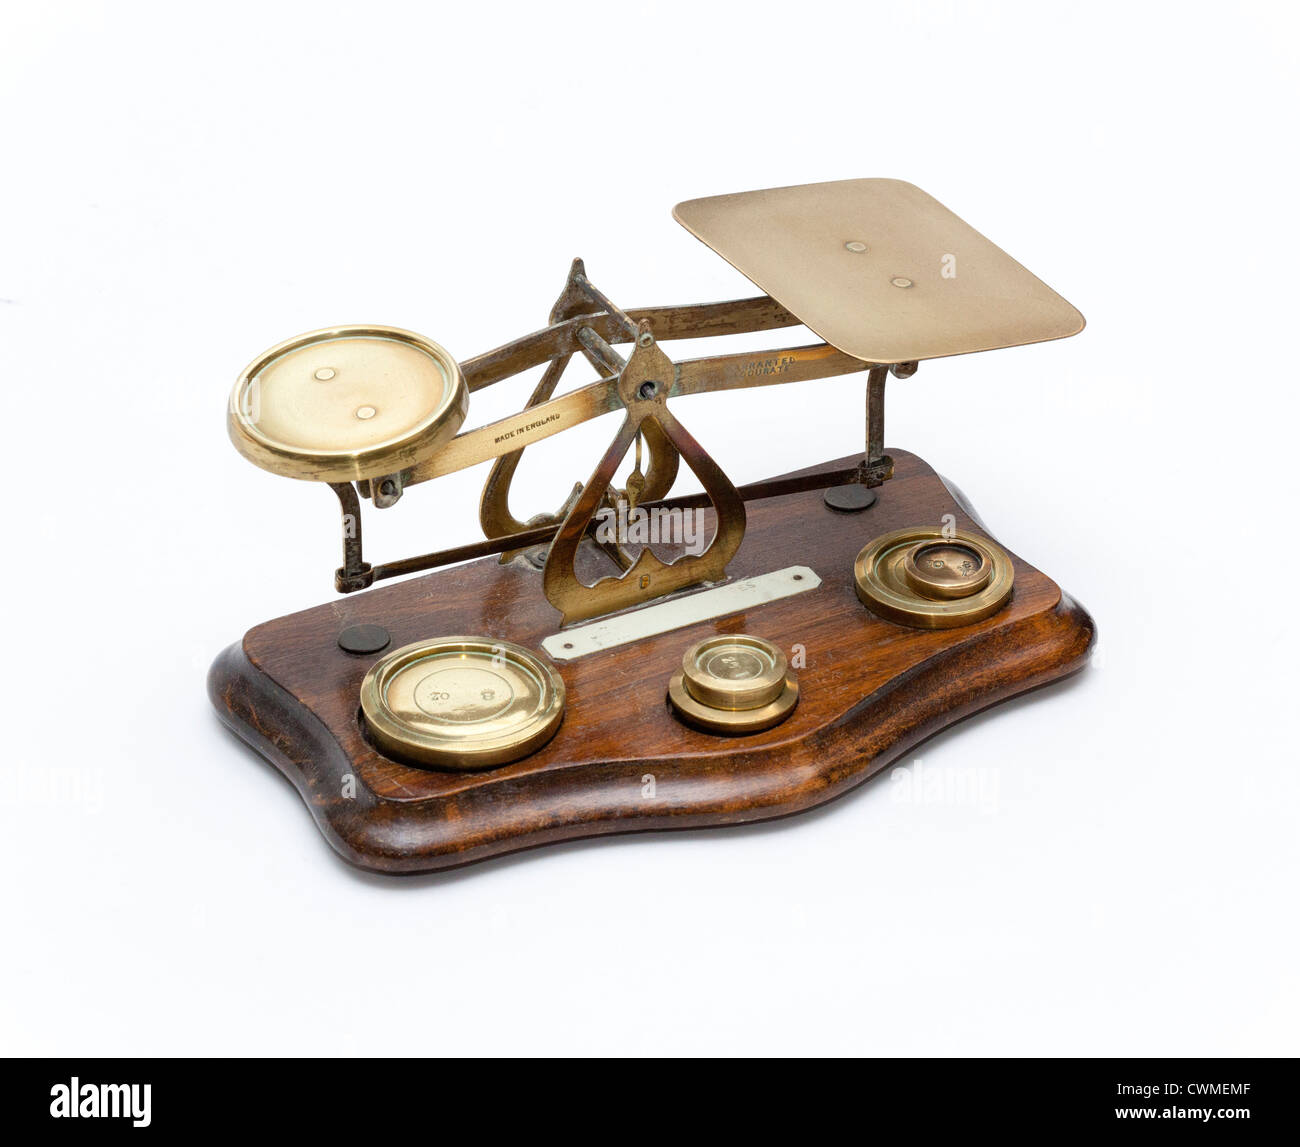 antique scales stock photos antique scales stock images alamy